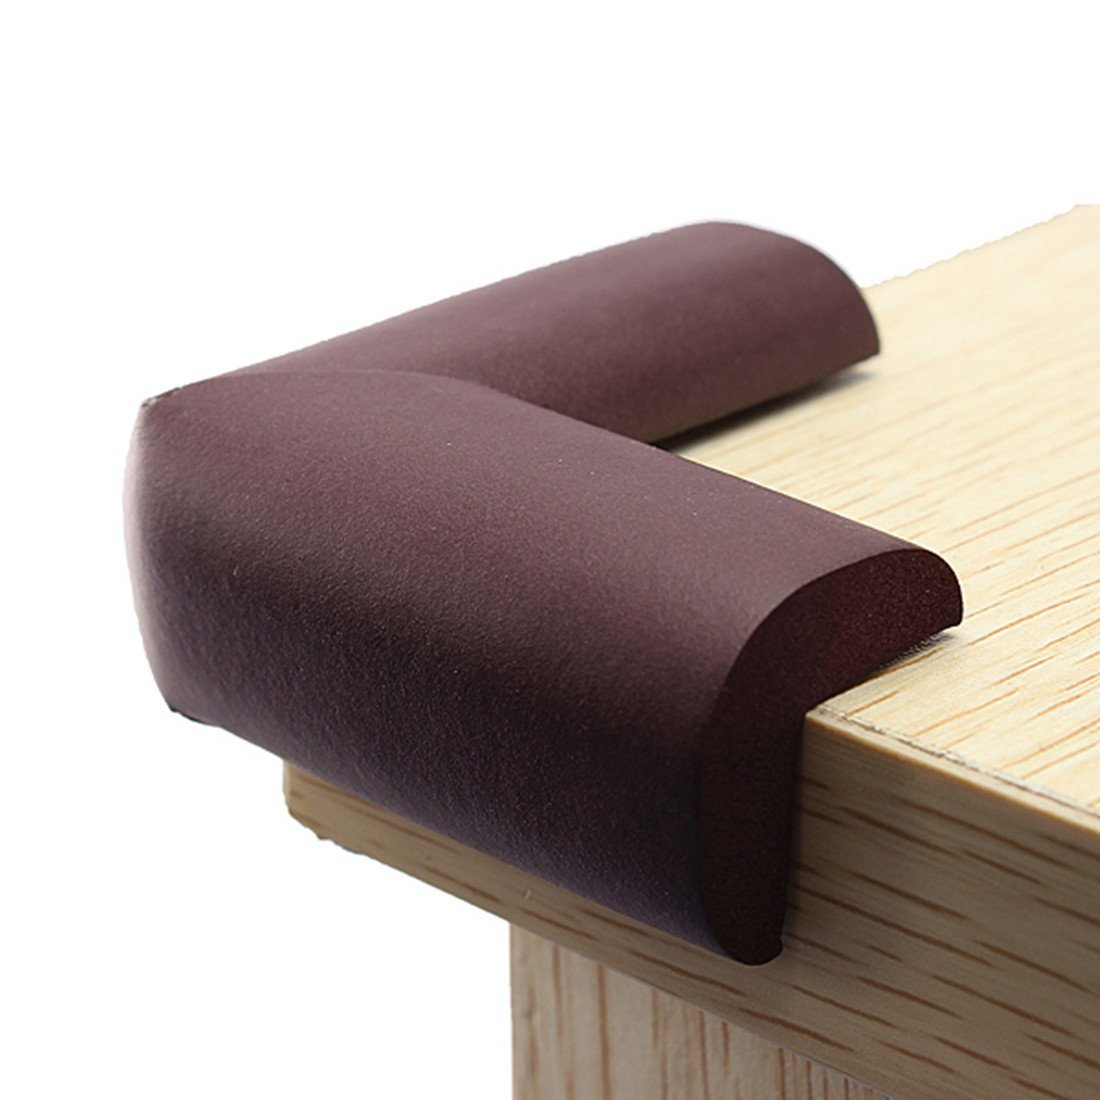 8pcs Edge Protection Corner Protection Child Safety Baby Safety Cushion Baby Soft Brown Black White